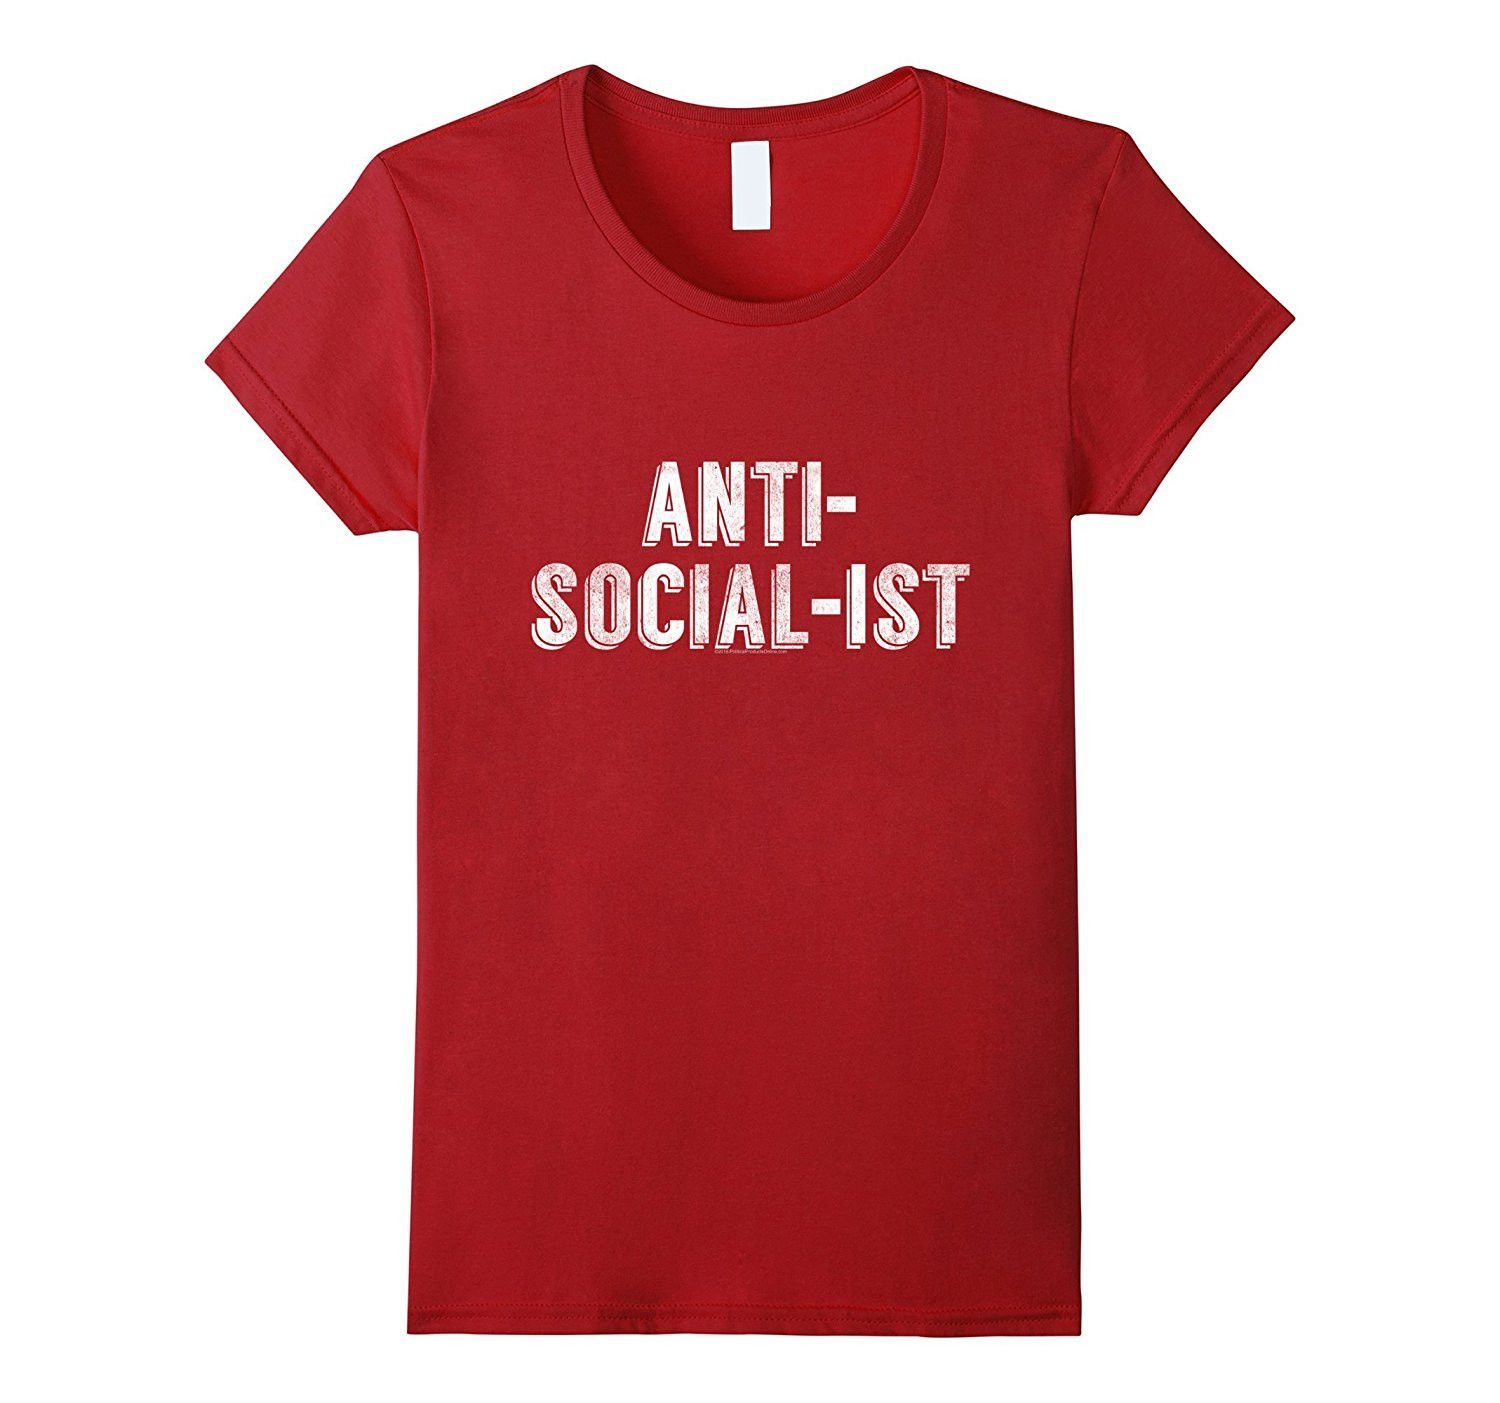 Anti-Social-ist- Funny Political T-Shirt against Socialism